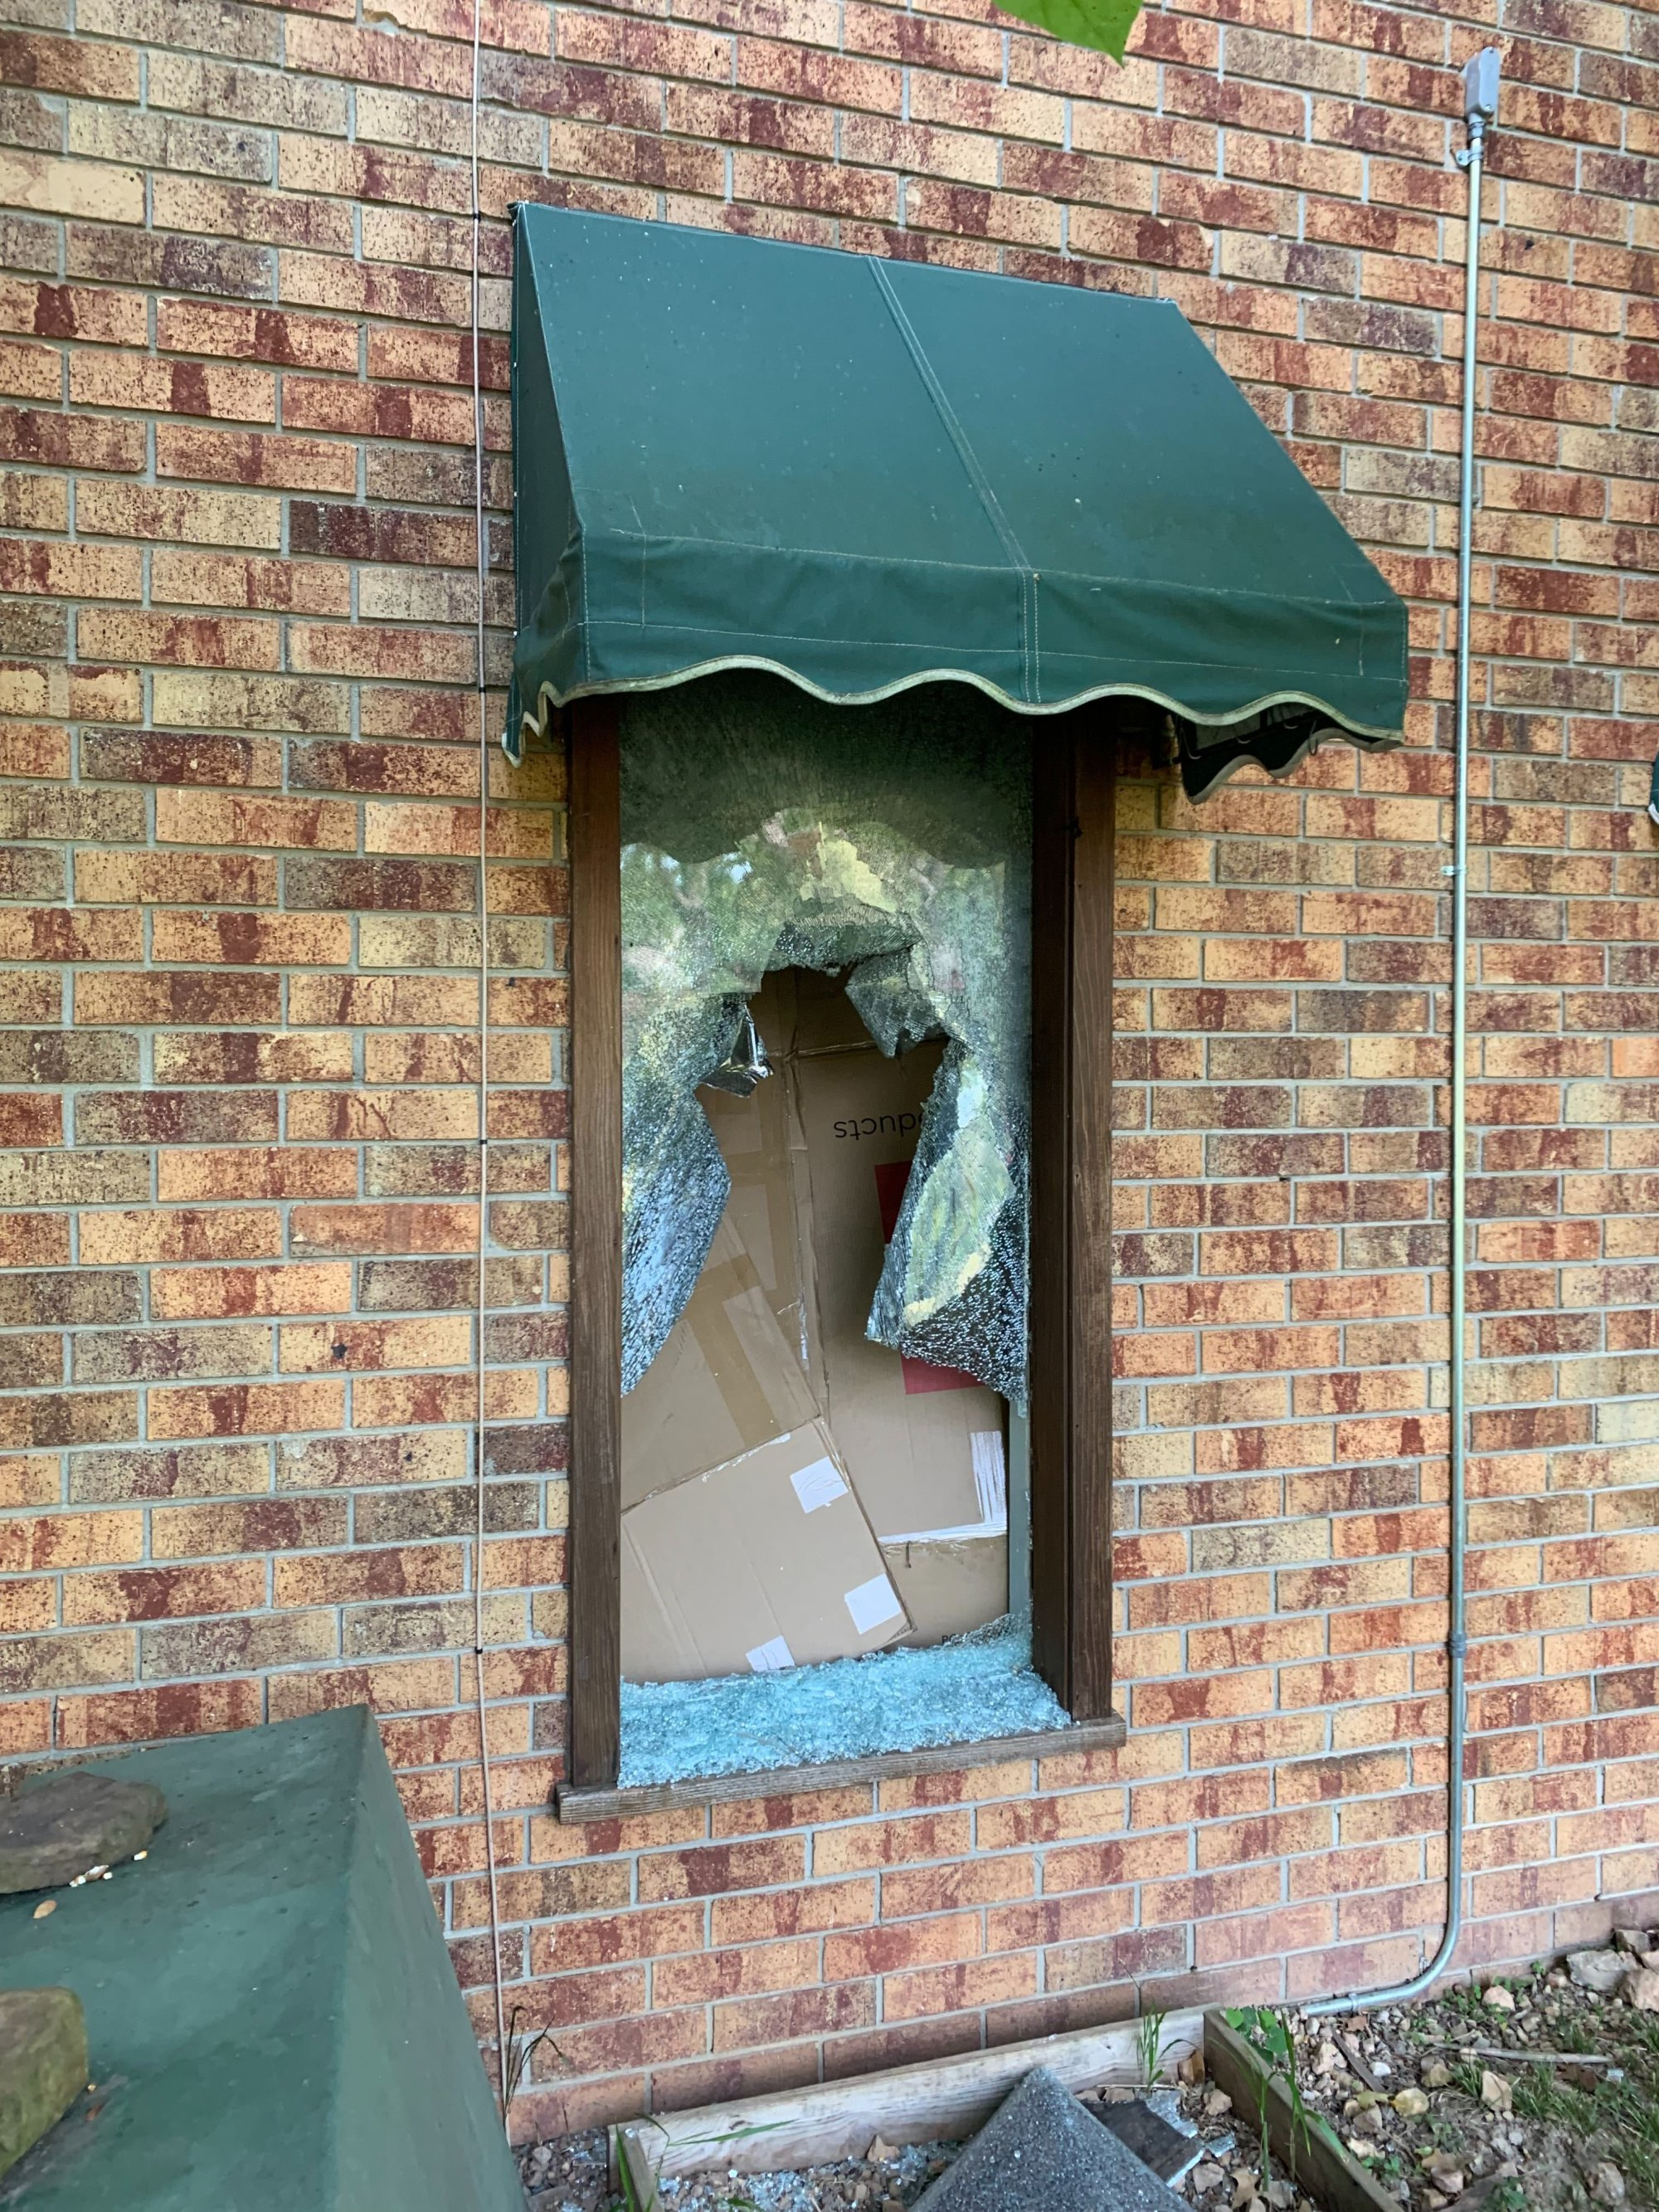 River Dental was vandalized overnight Tuesday, Sept. 10, 2019. (Tiffany Lee/KFSM)